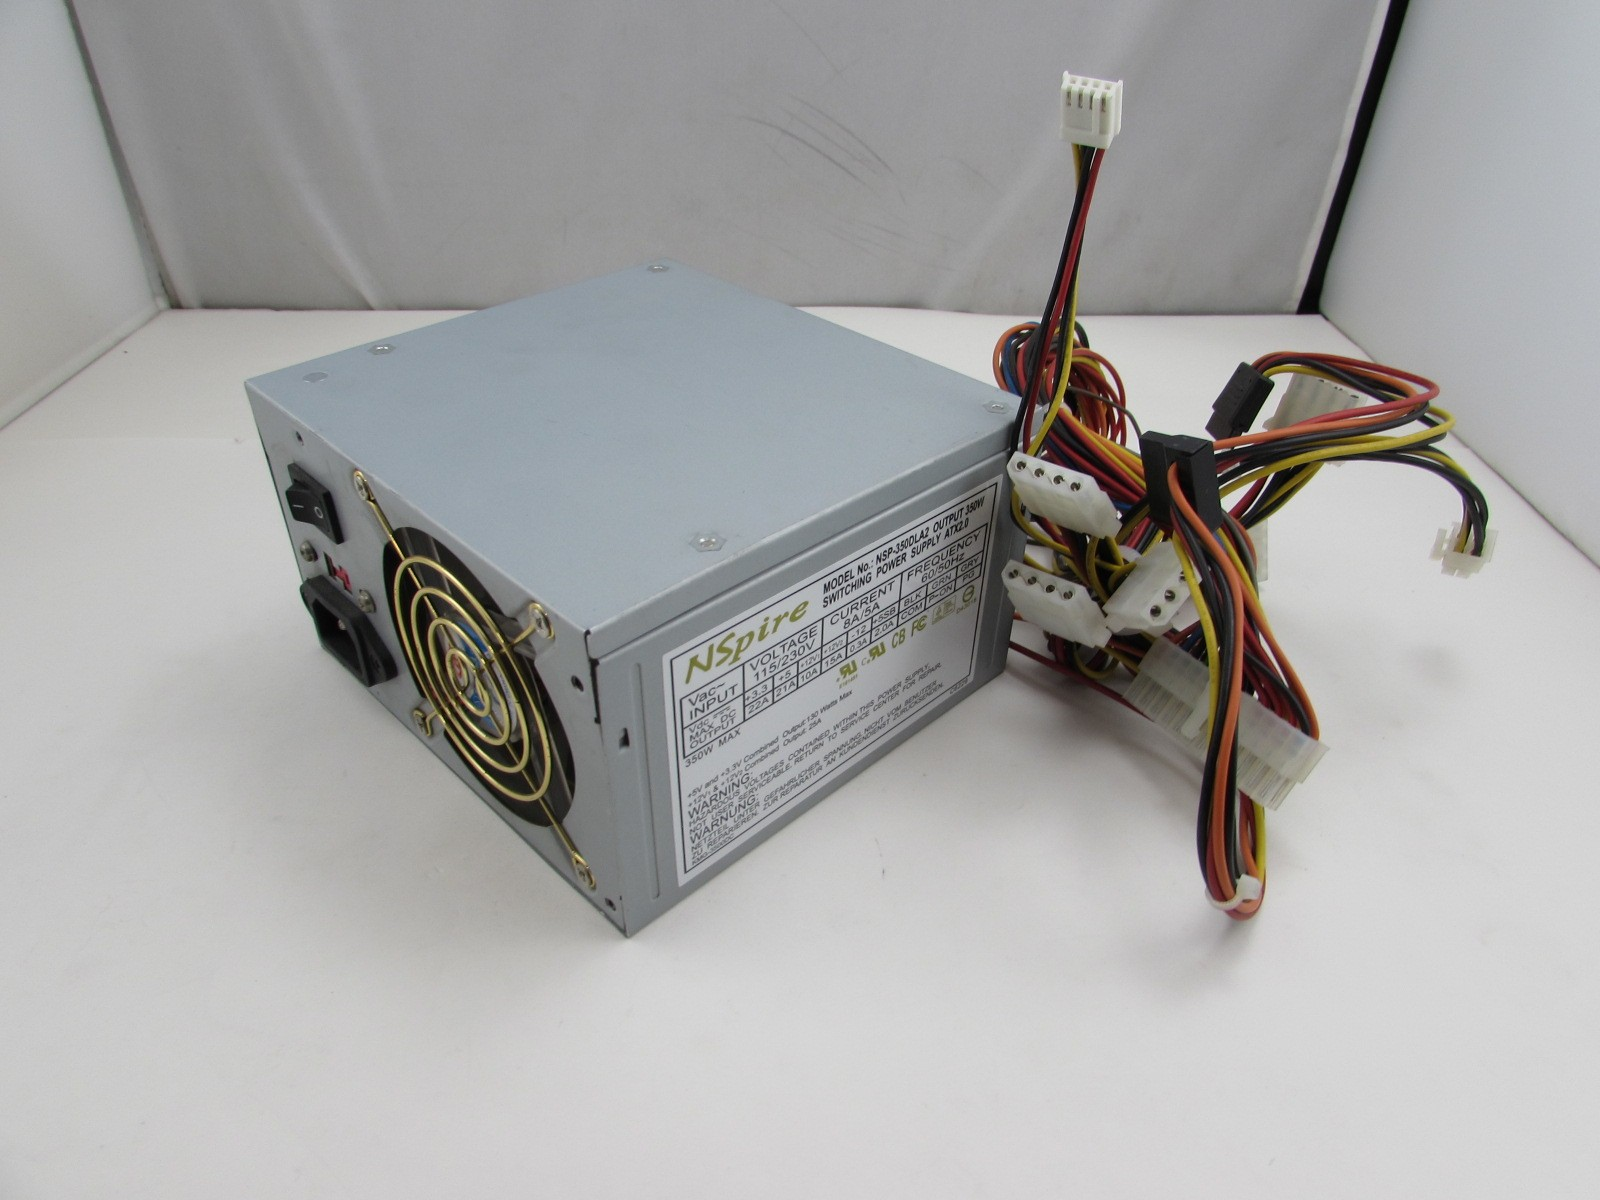 hight resolution of details about nsprire nsp 350dla2 350w 350 watts 24 pin atx 12v switching power supply psu